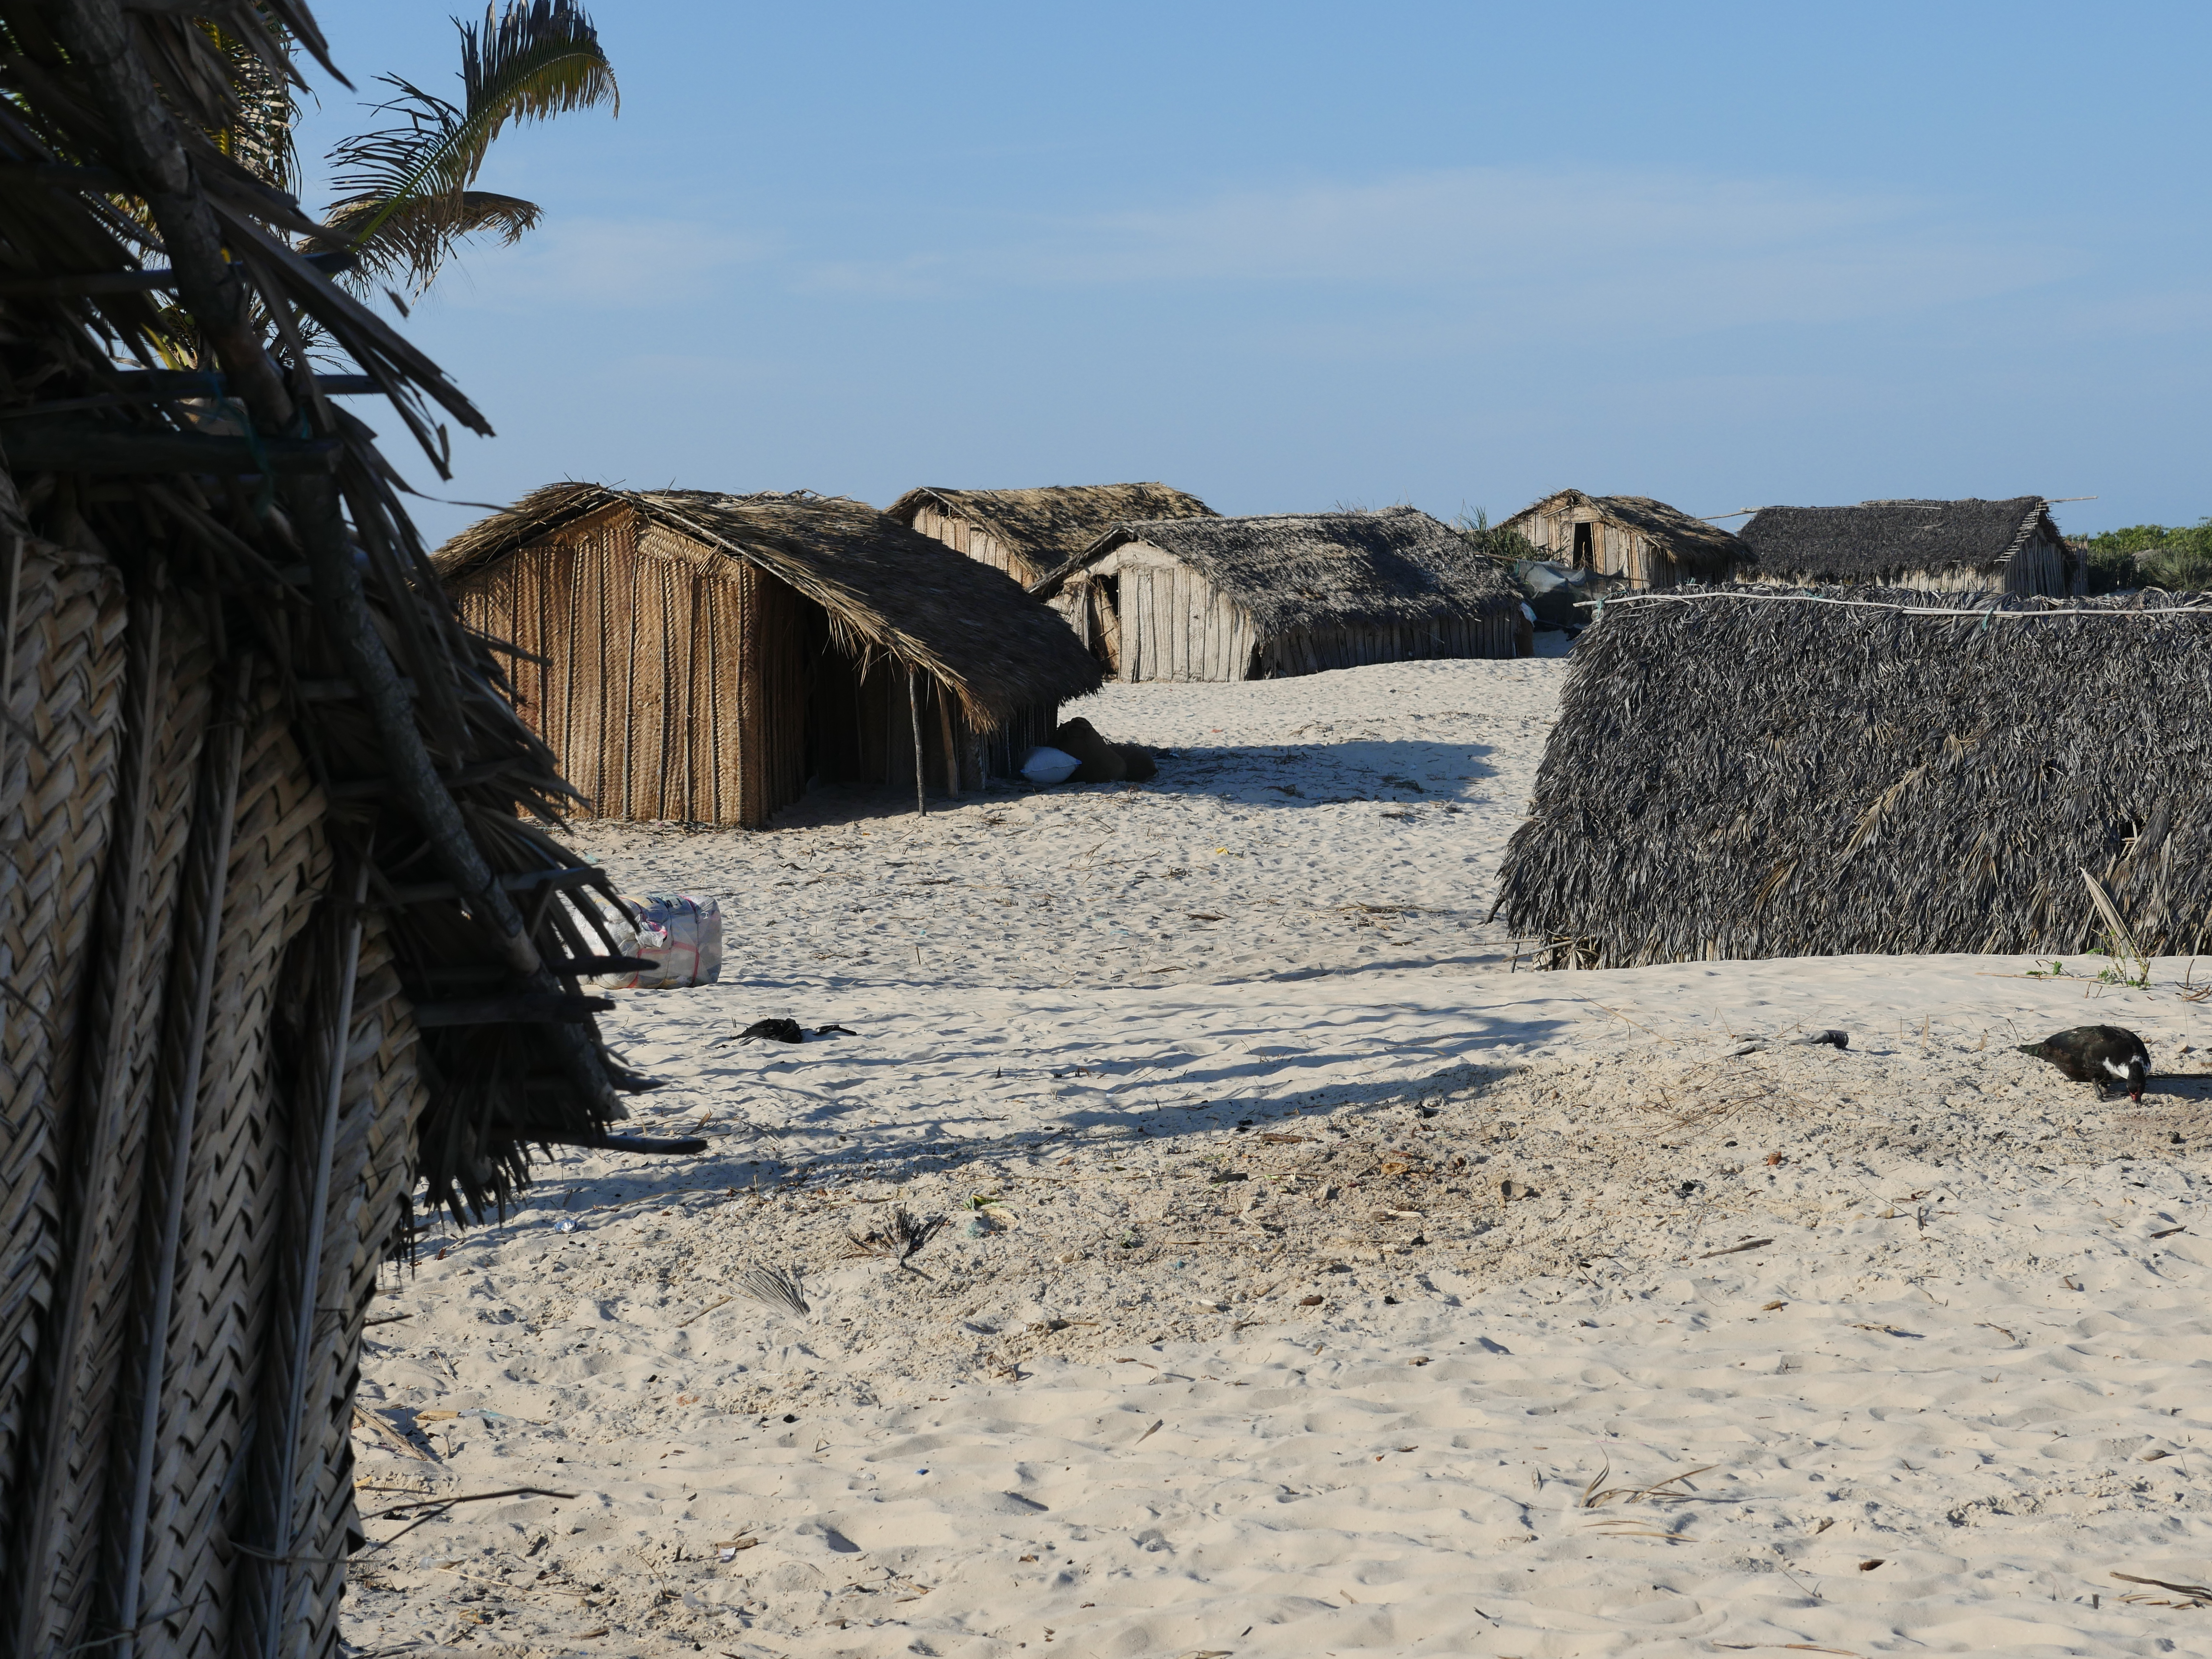 Chinese Sand mining in Mozambique leads to destroyed village, says Amnesty International